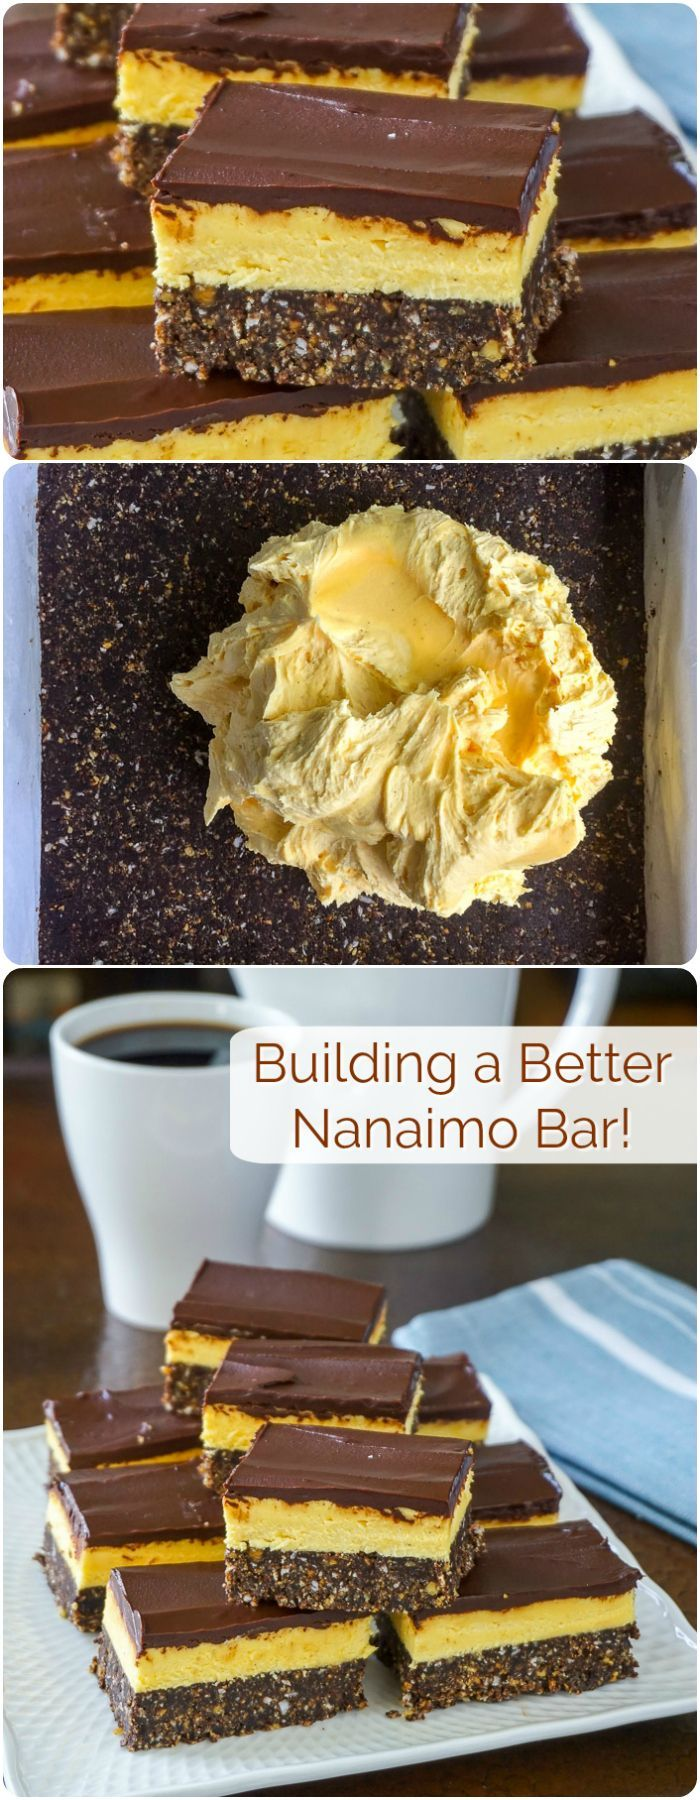 Nanaimo Bars – building a better version. Try this revamped version of the classic Canadian treat with a more substantial base layer and an improved filling.